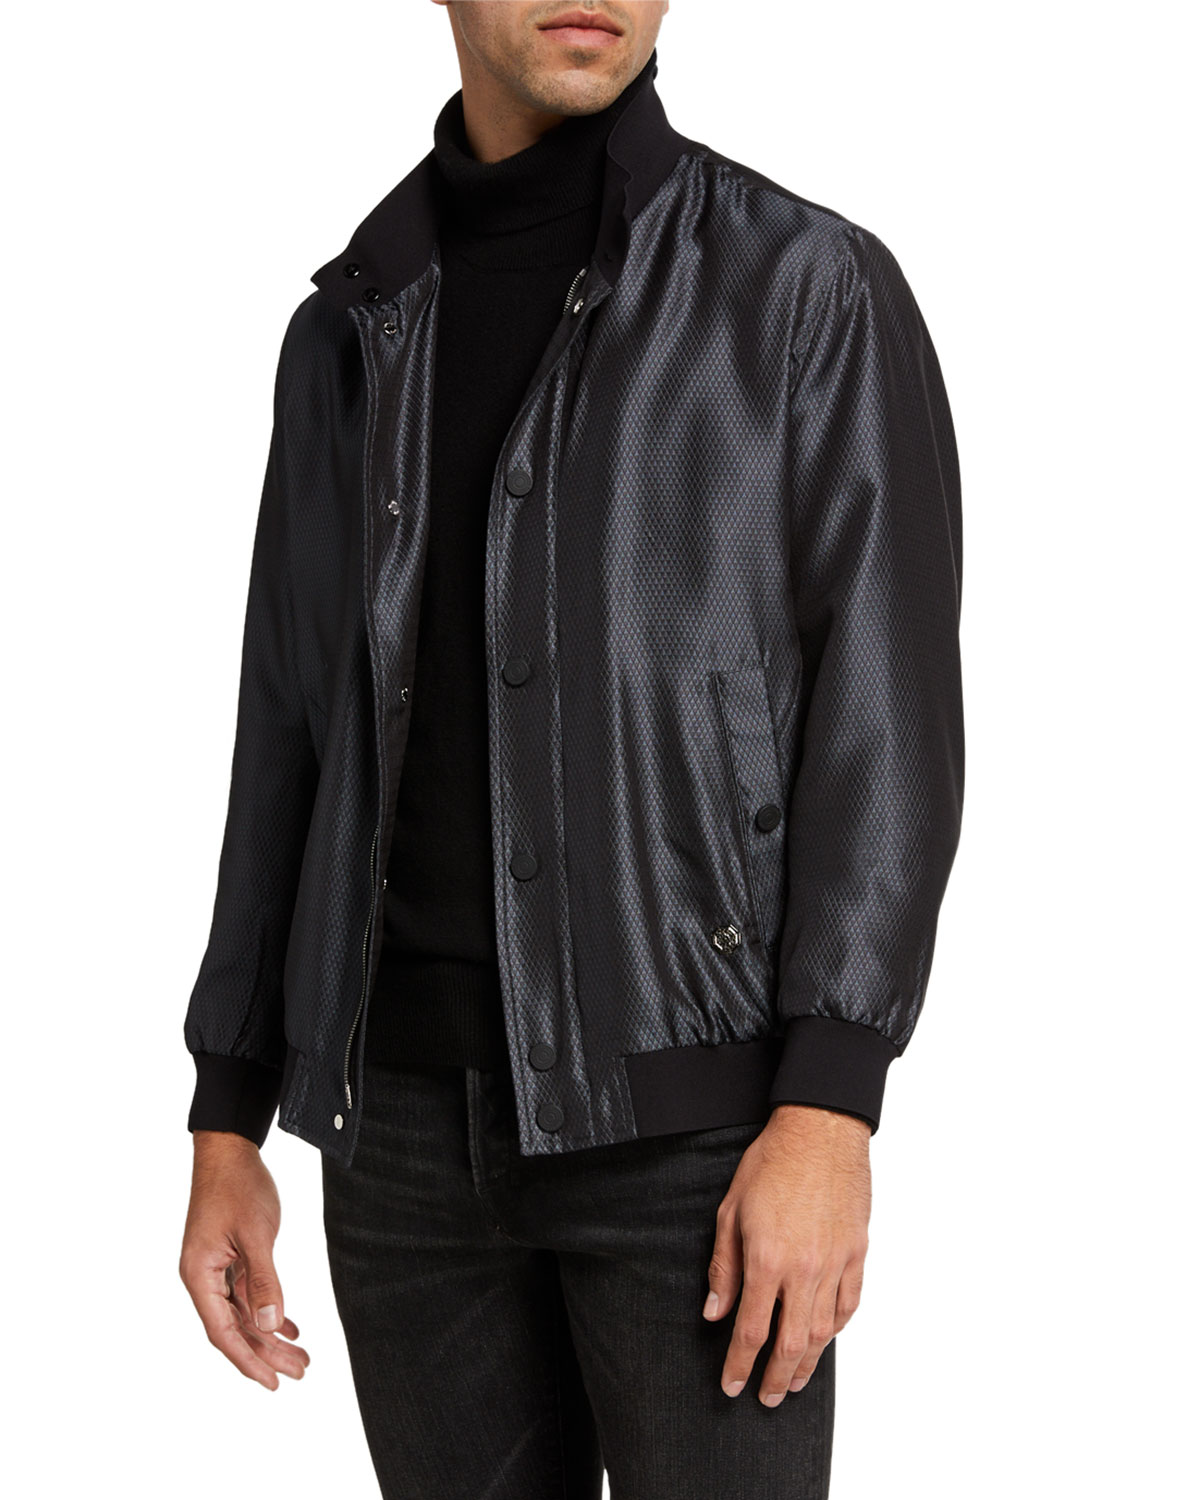 Stefano Ricci Men's Silk Snap-Front Bomber Jacket in Black